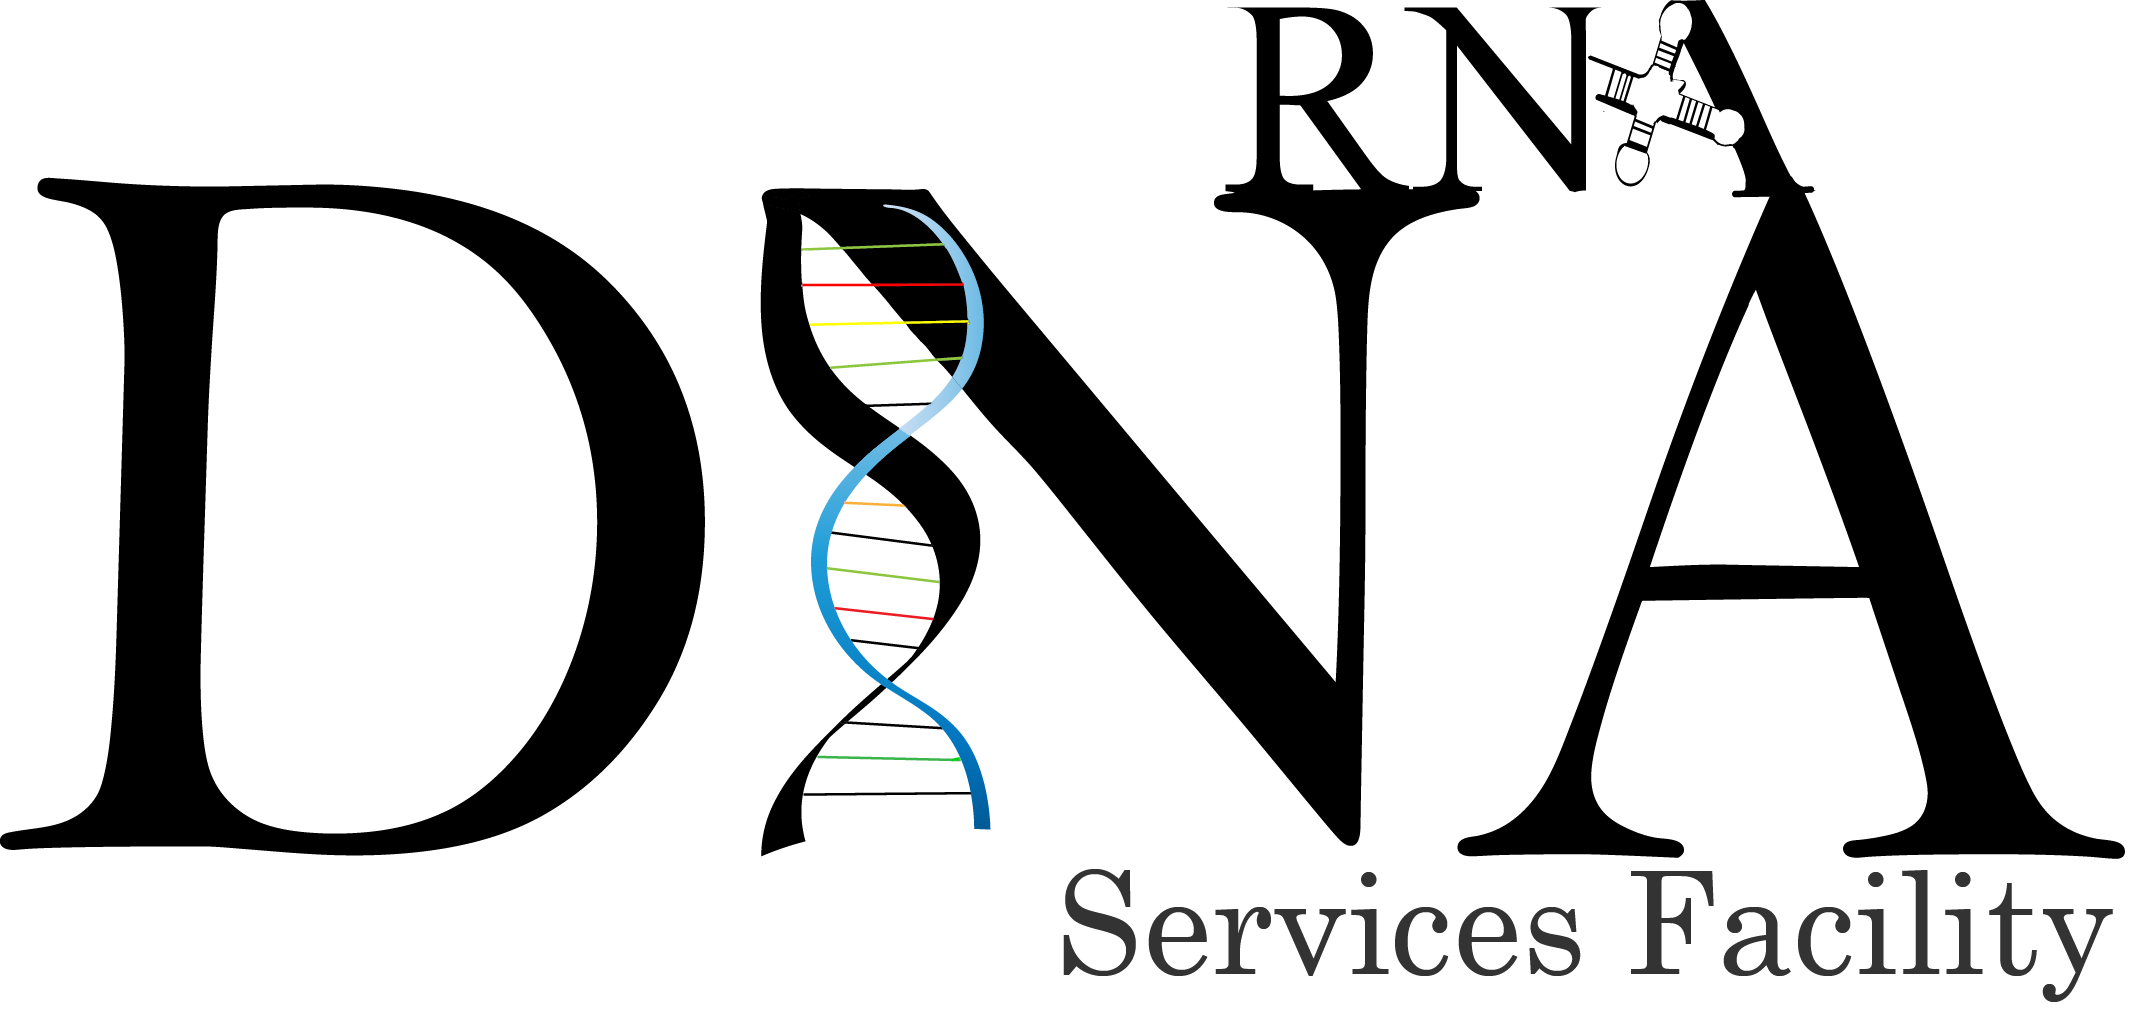 iLab Organizer :: Center for Genomic Research - DNA Services Facility